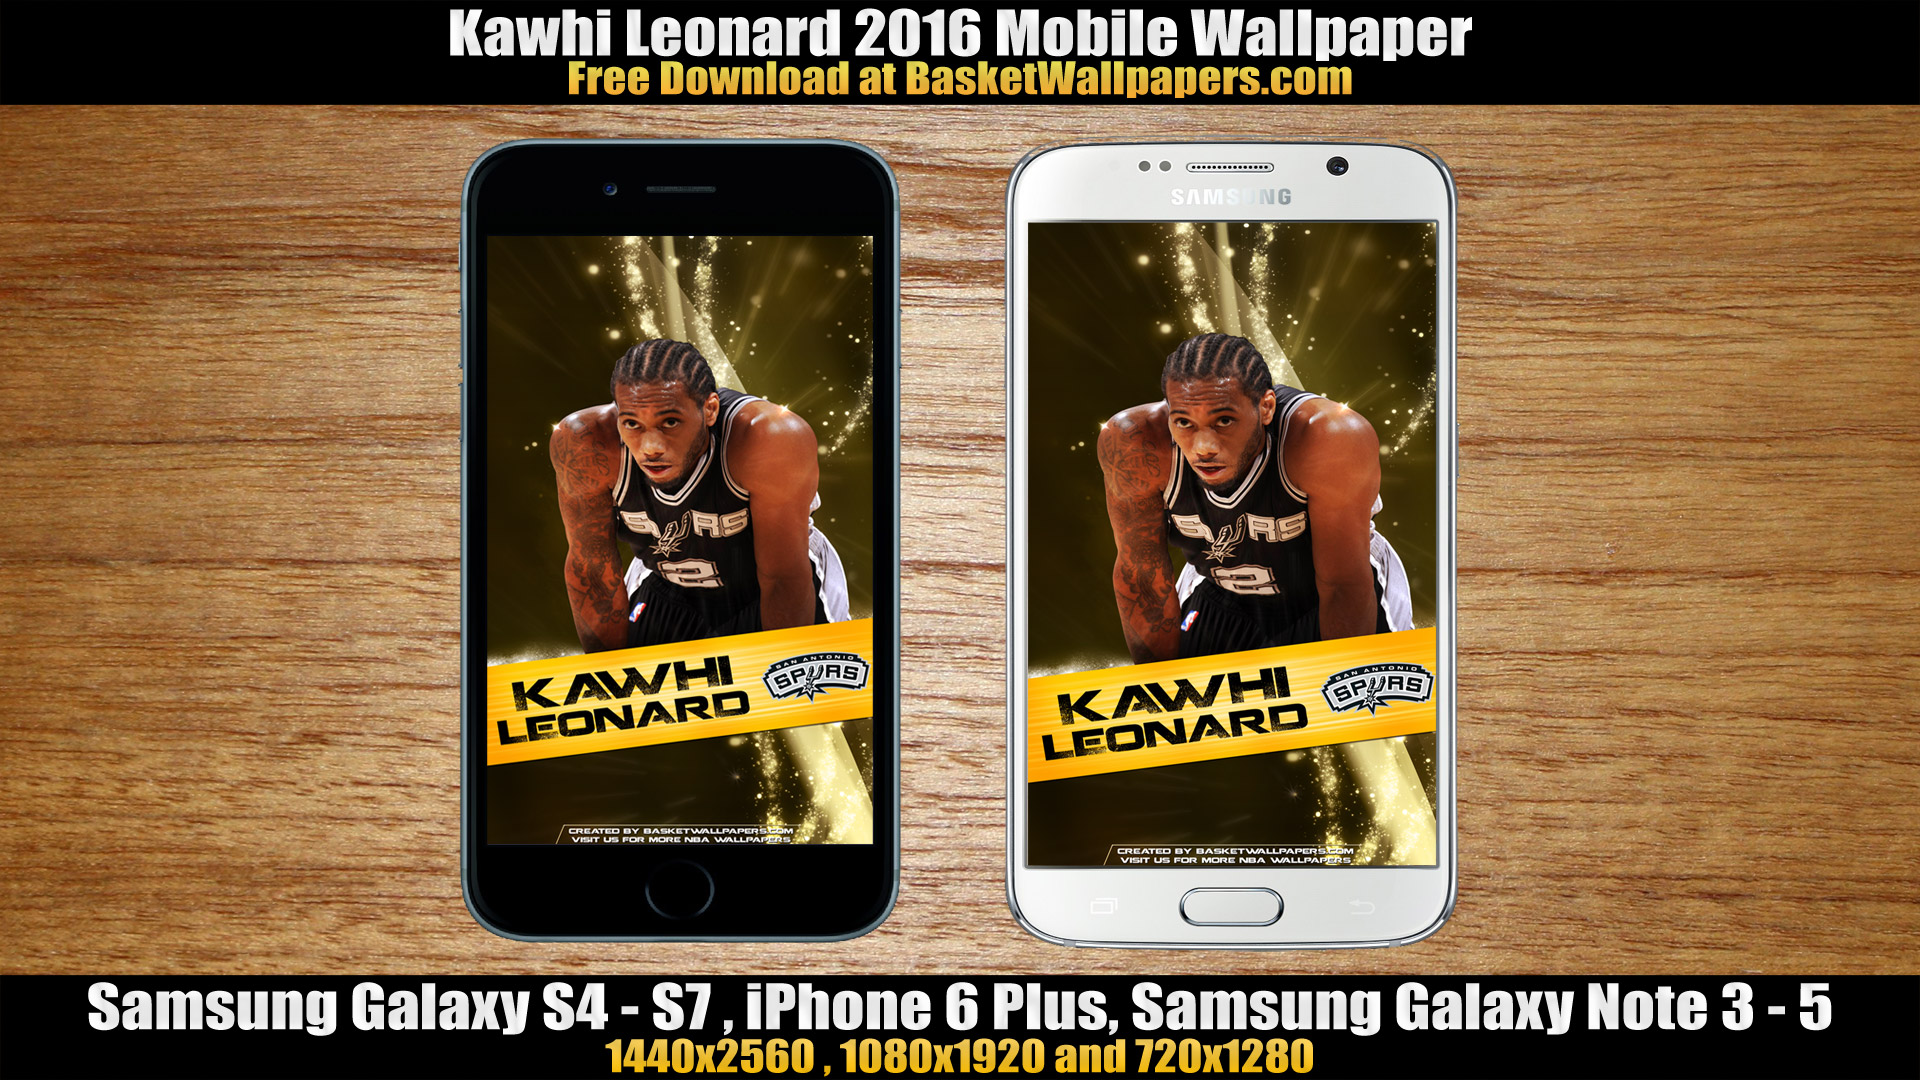 Kawhi Leonard San Antonio Spurs 2016 Mobile Wallpaper